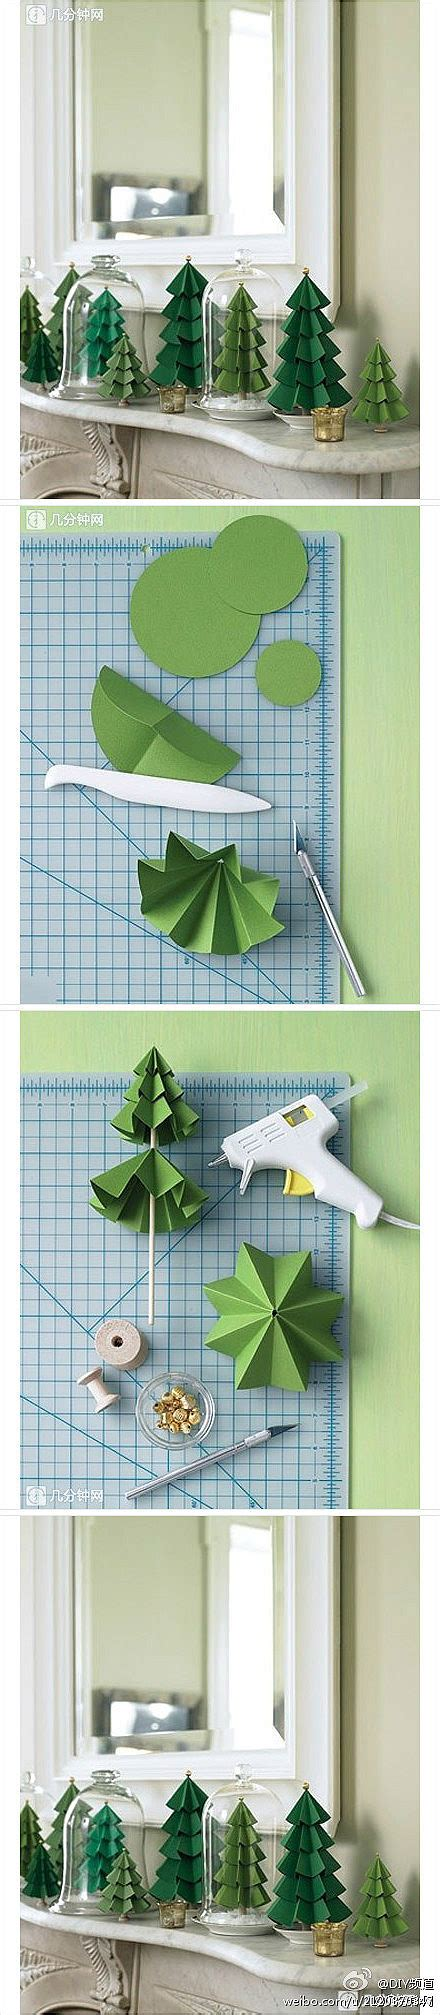 How To Make Paper From Trees Step By Step - how to make paper craft trees step by step diy